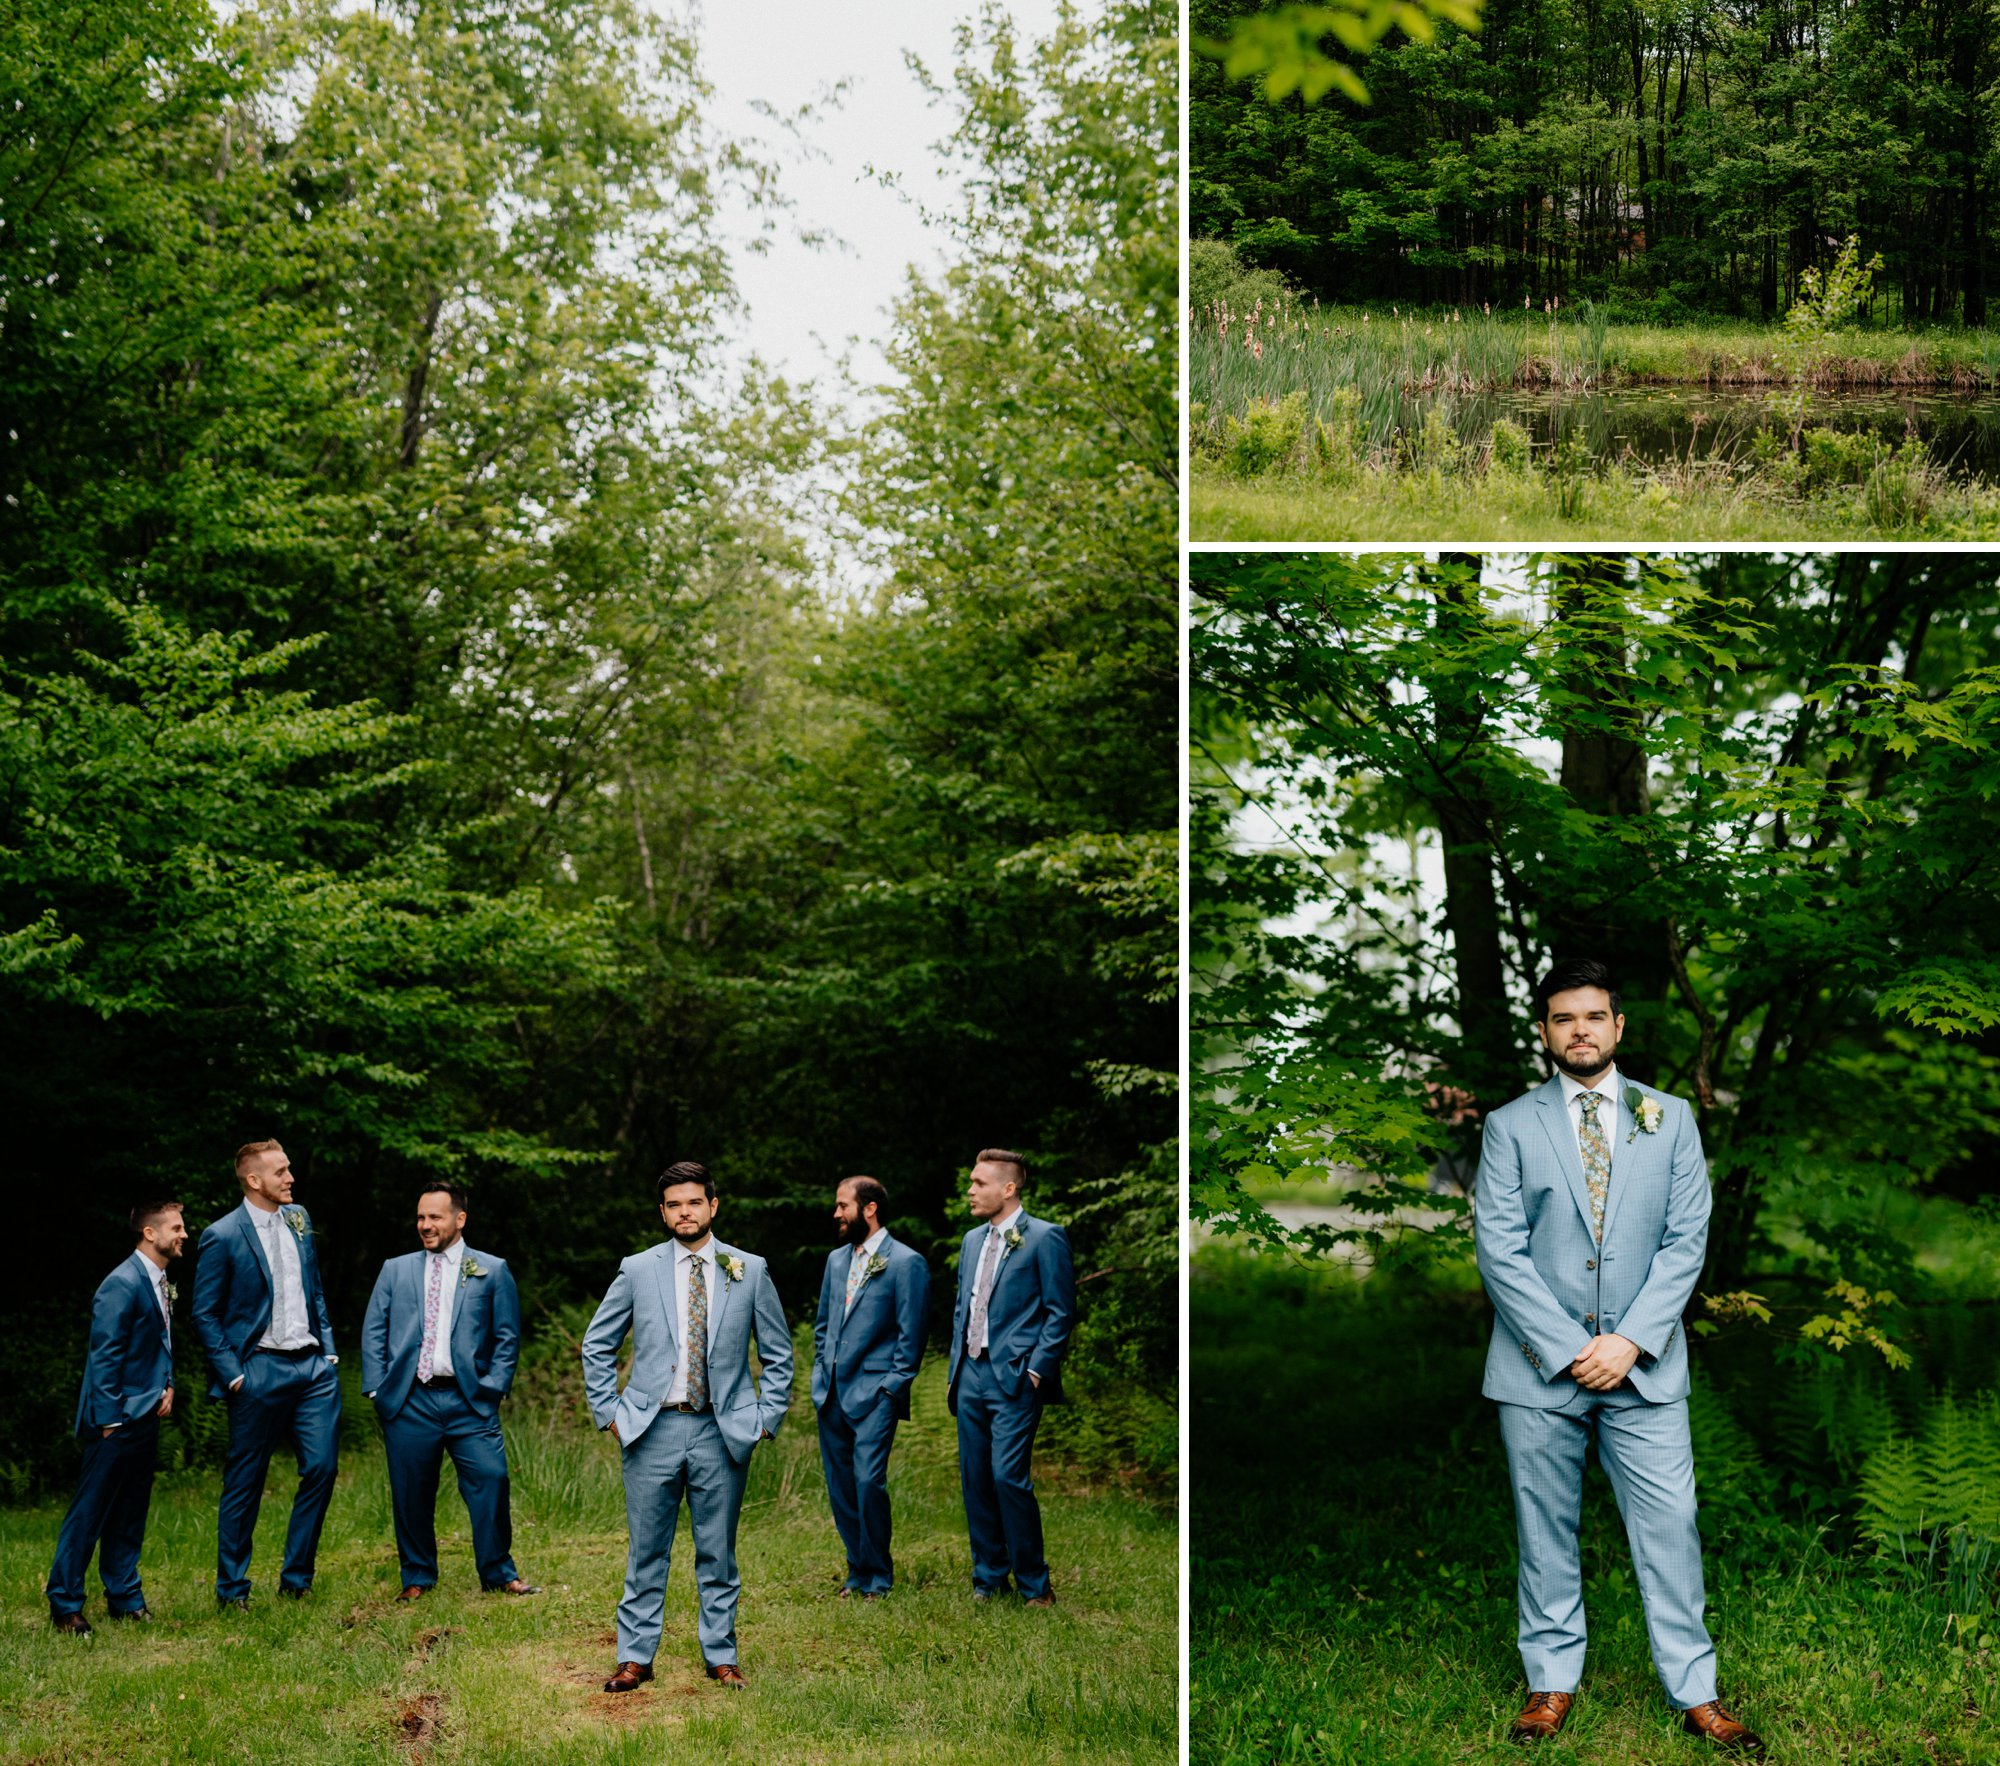 Fiddle Lake Farm Philadelphia Pennsylvania Misty Rustic Wedding with Lush Florals Guys portraits